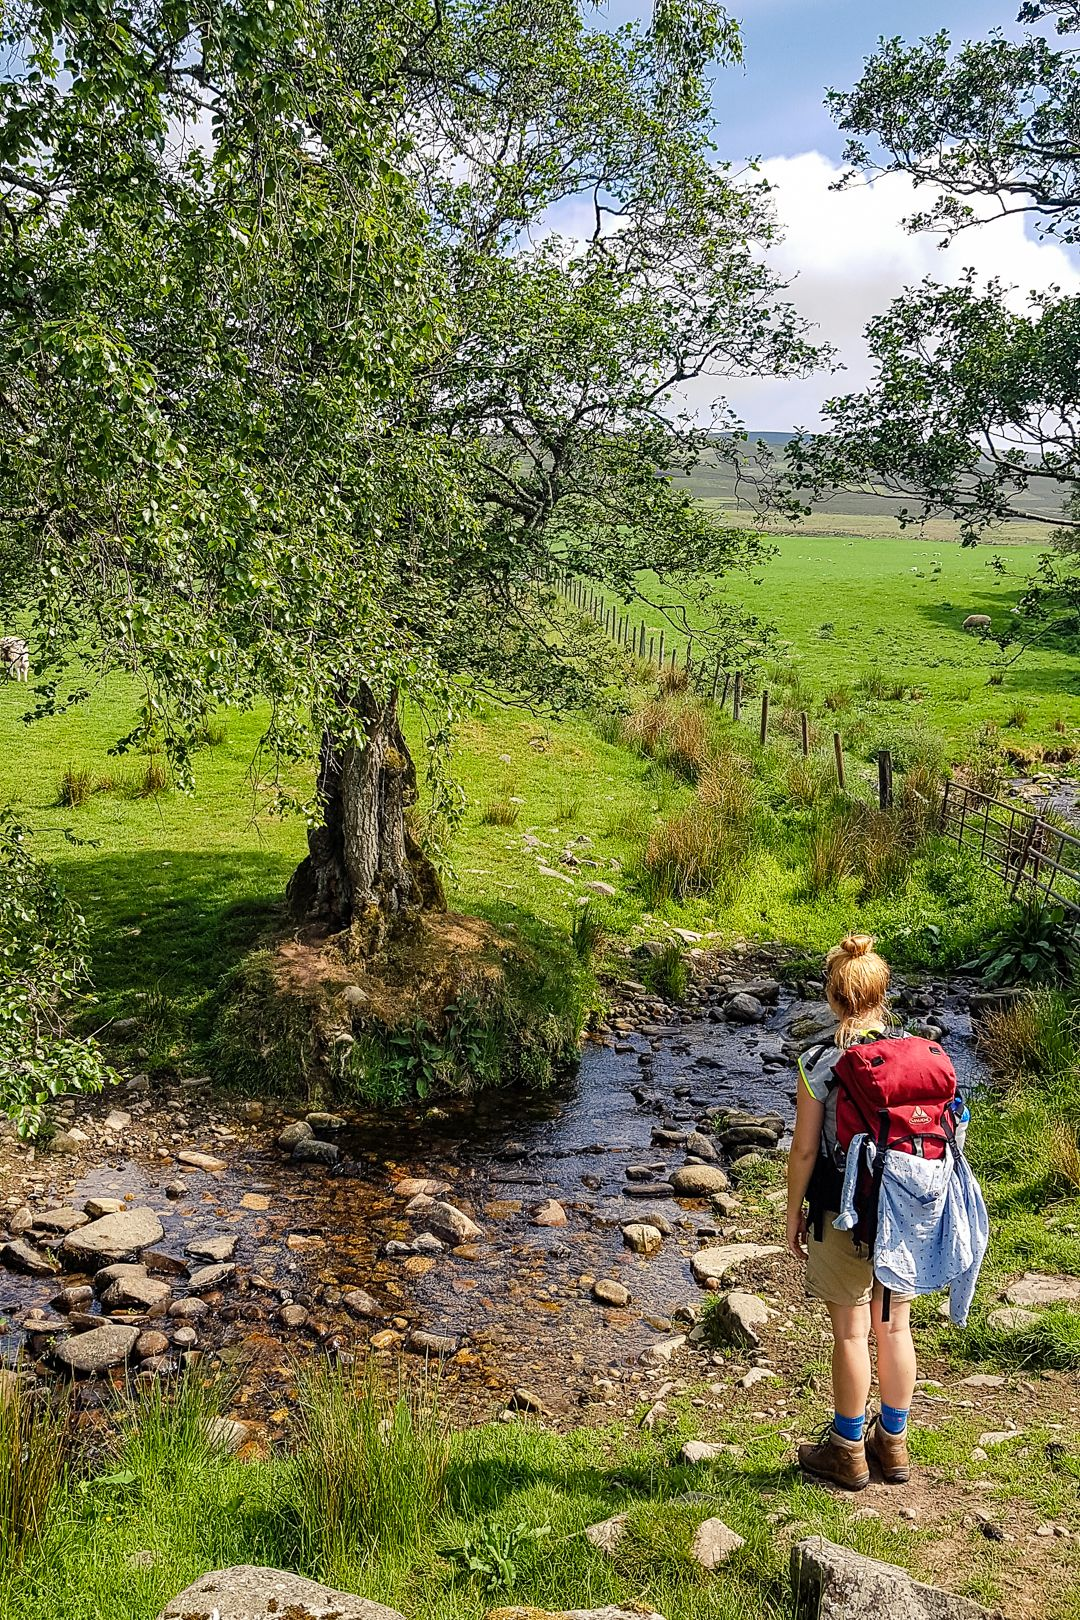 The Complete Hiking Guide to the Speyside Way in S